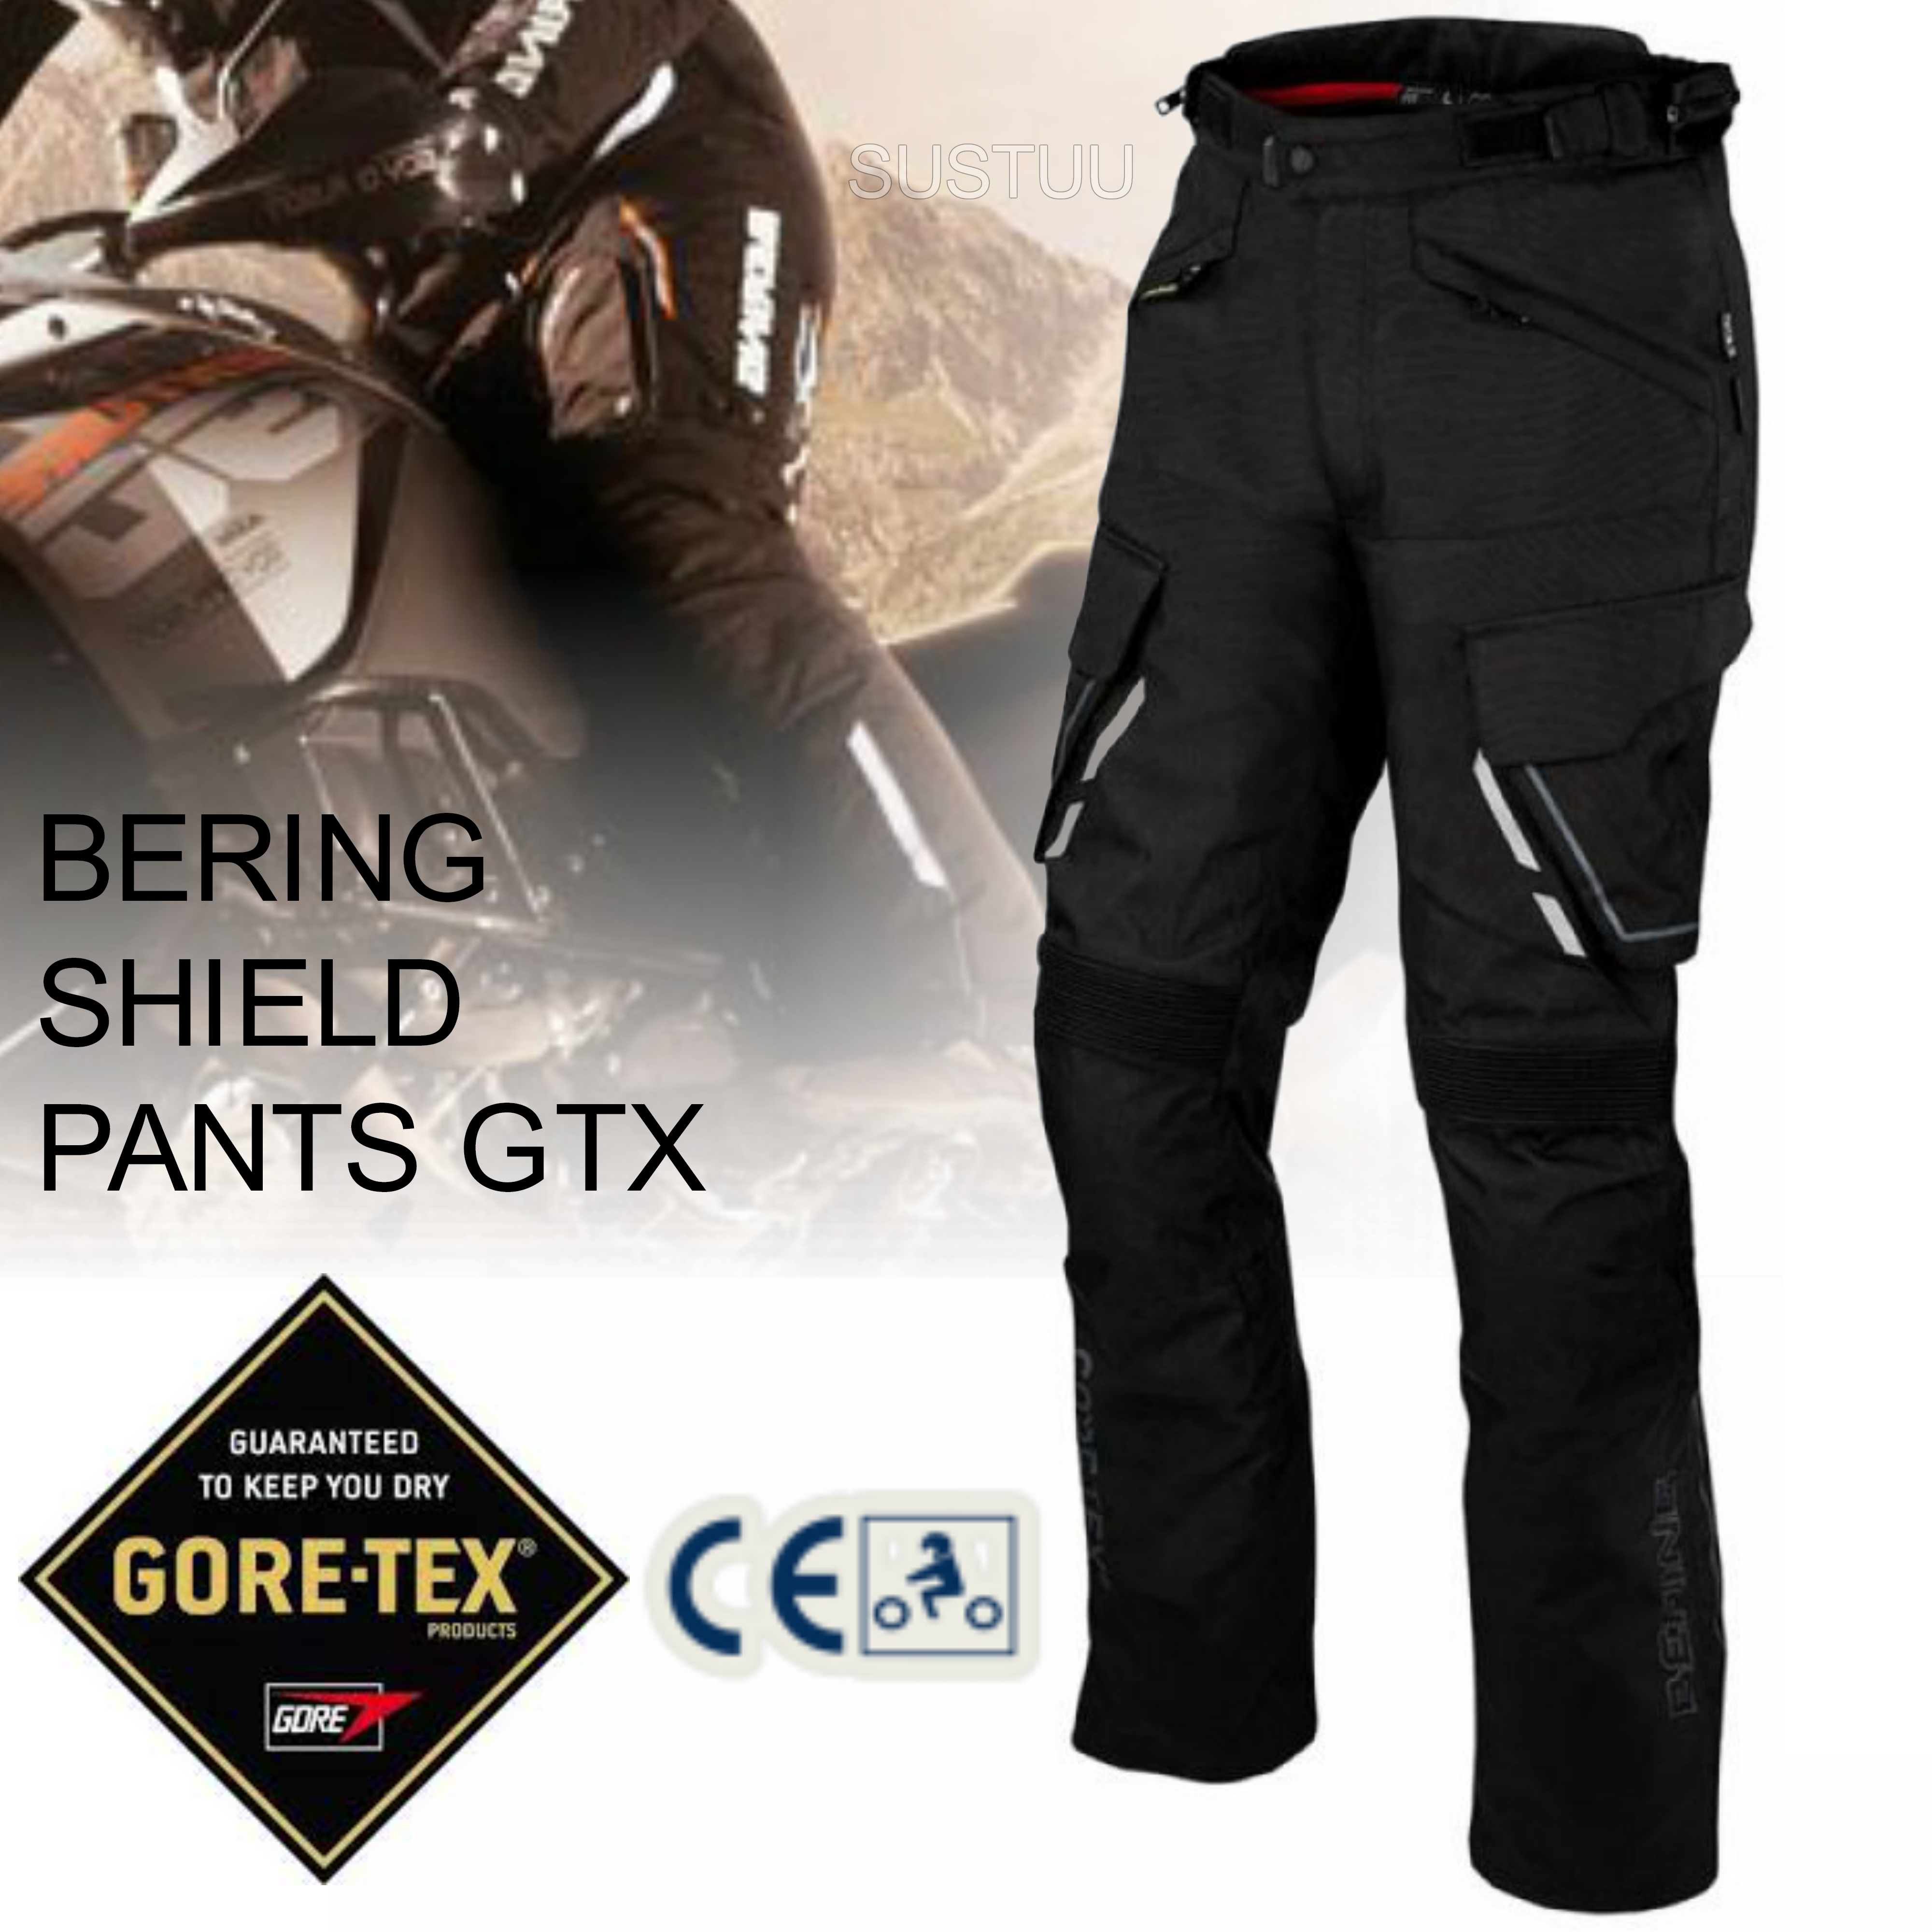 New Bering Shield Motorcycle/Bike Men Textile Pant Trousers|Gore-Tex & Breathable|CE Approved|Black